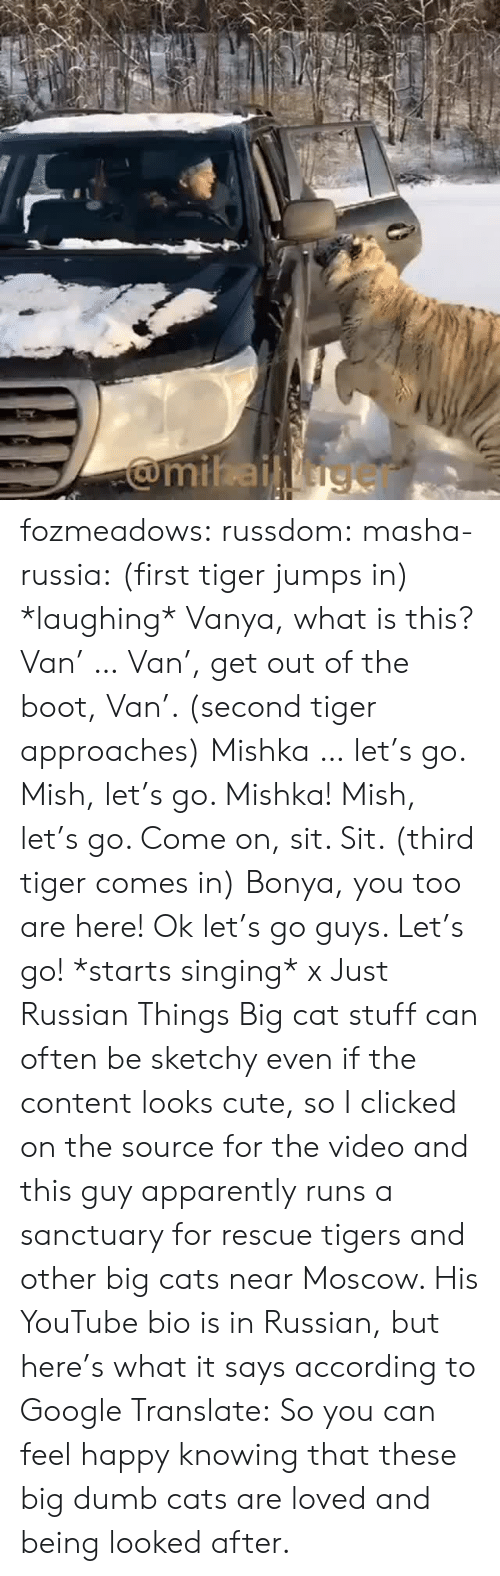 big cat: fozmeadows: russdom:  masha-russia: (first tiger jumps in) *laughing* Vanya, what is this? Van' … Van', get out of the boot, Van'. (second tiger approaches) Mishka … let's go. Mish, let's go. Mishka! Mish, let's go. Come on, sit. Sit. (third tiger comes in) Bonya, you too are here! Ok let's go guys. Let's go! *starts singing* x Just Russian Things  Big cat stuff can often be sketchy even if the content looks cute, so I clicked on the source for the video and this guy apparently runs a sanctuary for rescue tigers and other big cats near Moscow. His YouTube bio is in Russian, but here's what it says according to Google Translate: So you can feel happy knowing that these big dumb cats are loved and being looked after.